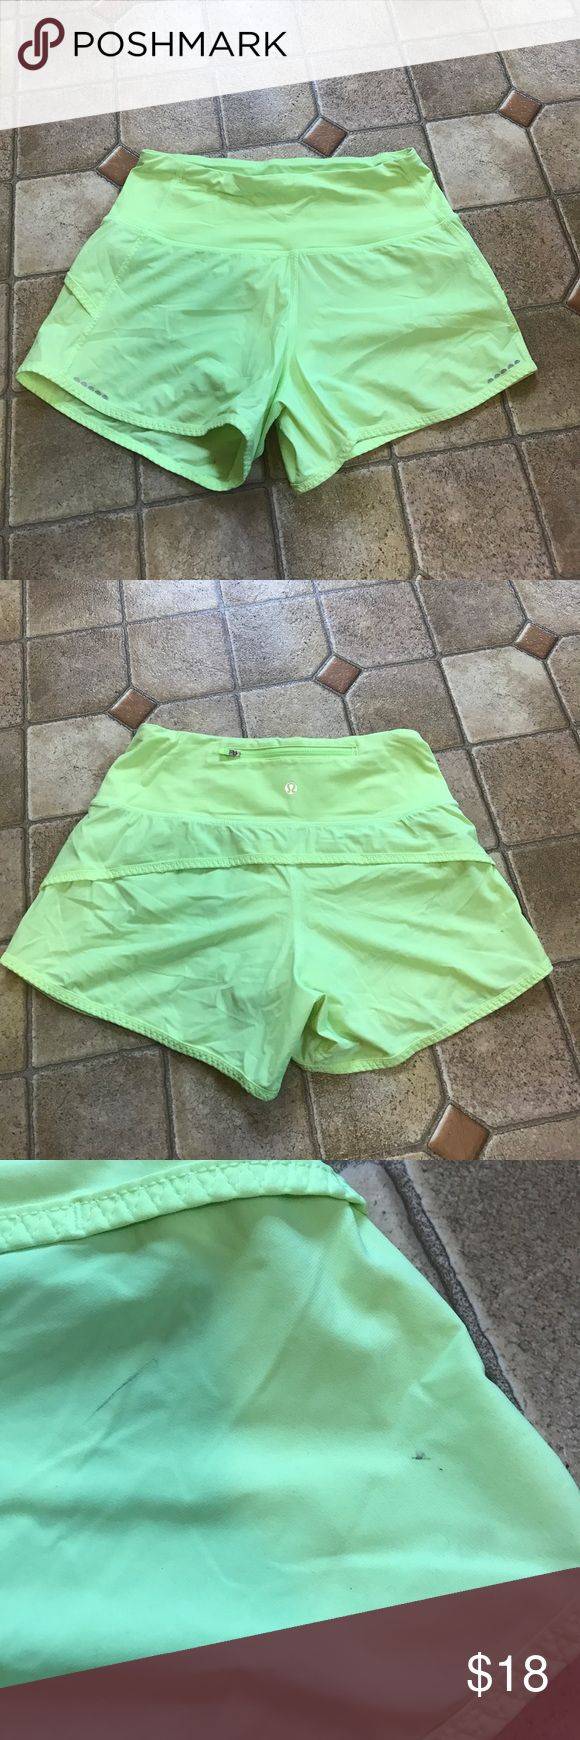 Lululemon neon green speed shorts size 2 Lululemon neon speed shorts size 2. Shorts have a zippered pocket on the back waist band. Shorts are in good used condition but do have some marks on the back side as pictured. lululemon athletica Shorts